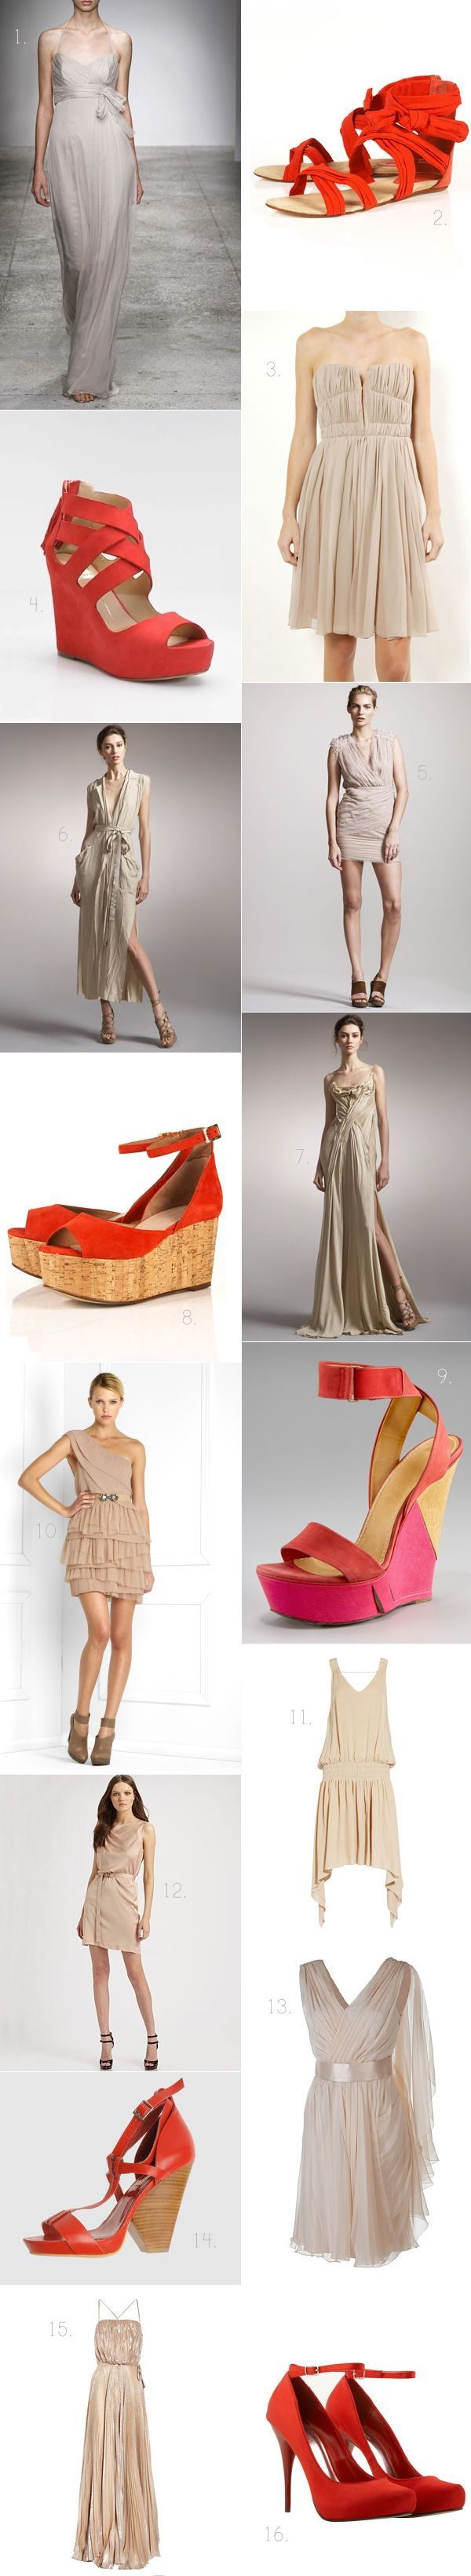 Nude And Vermillion Roundup